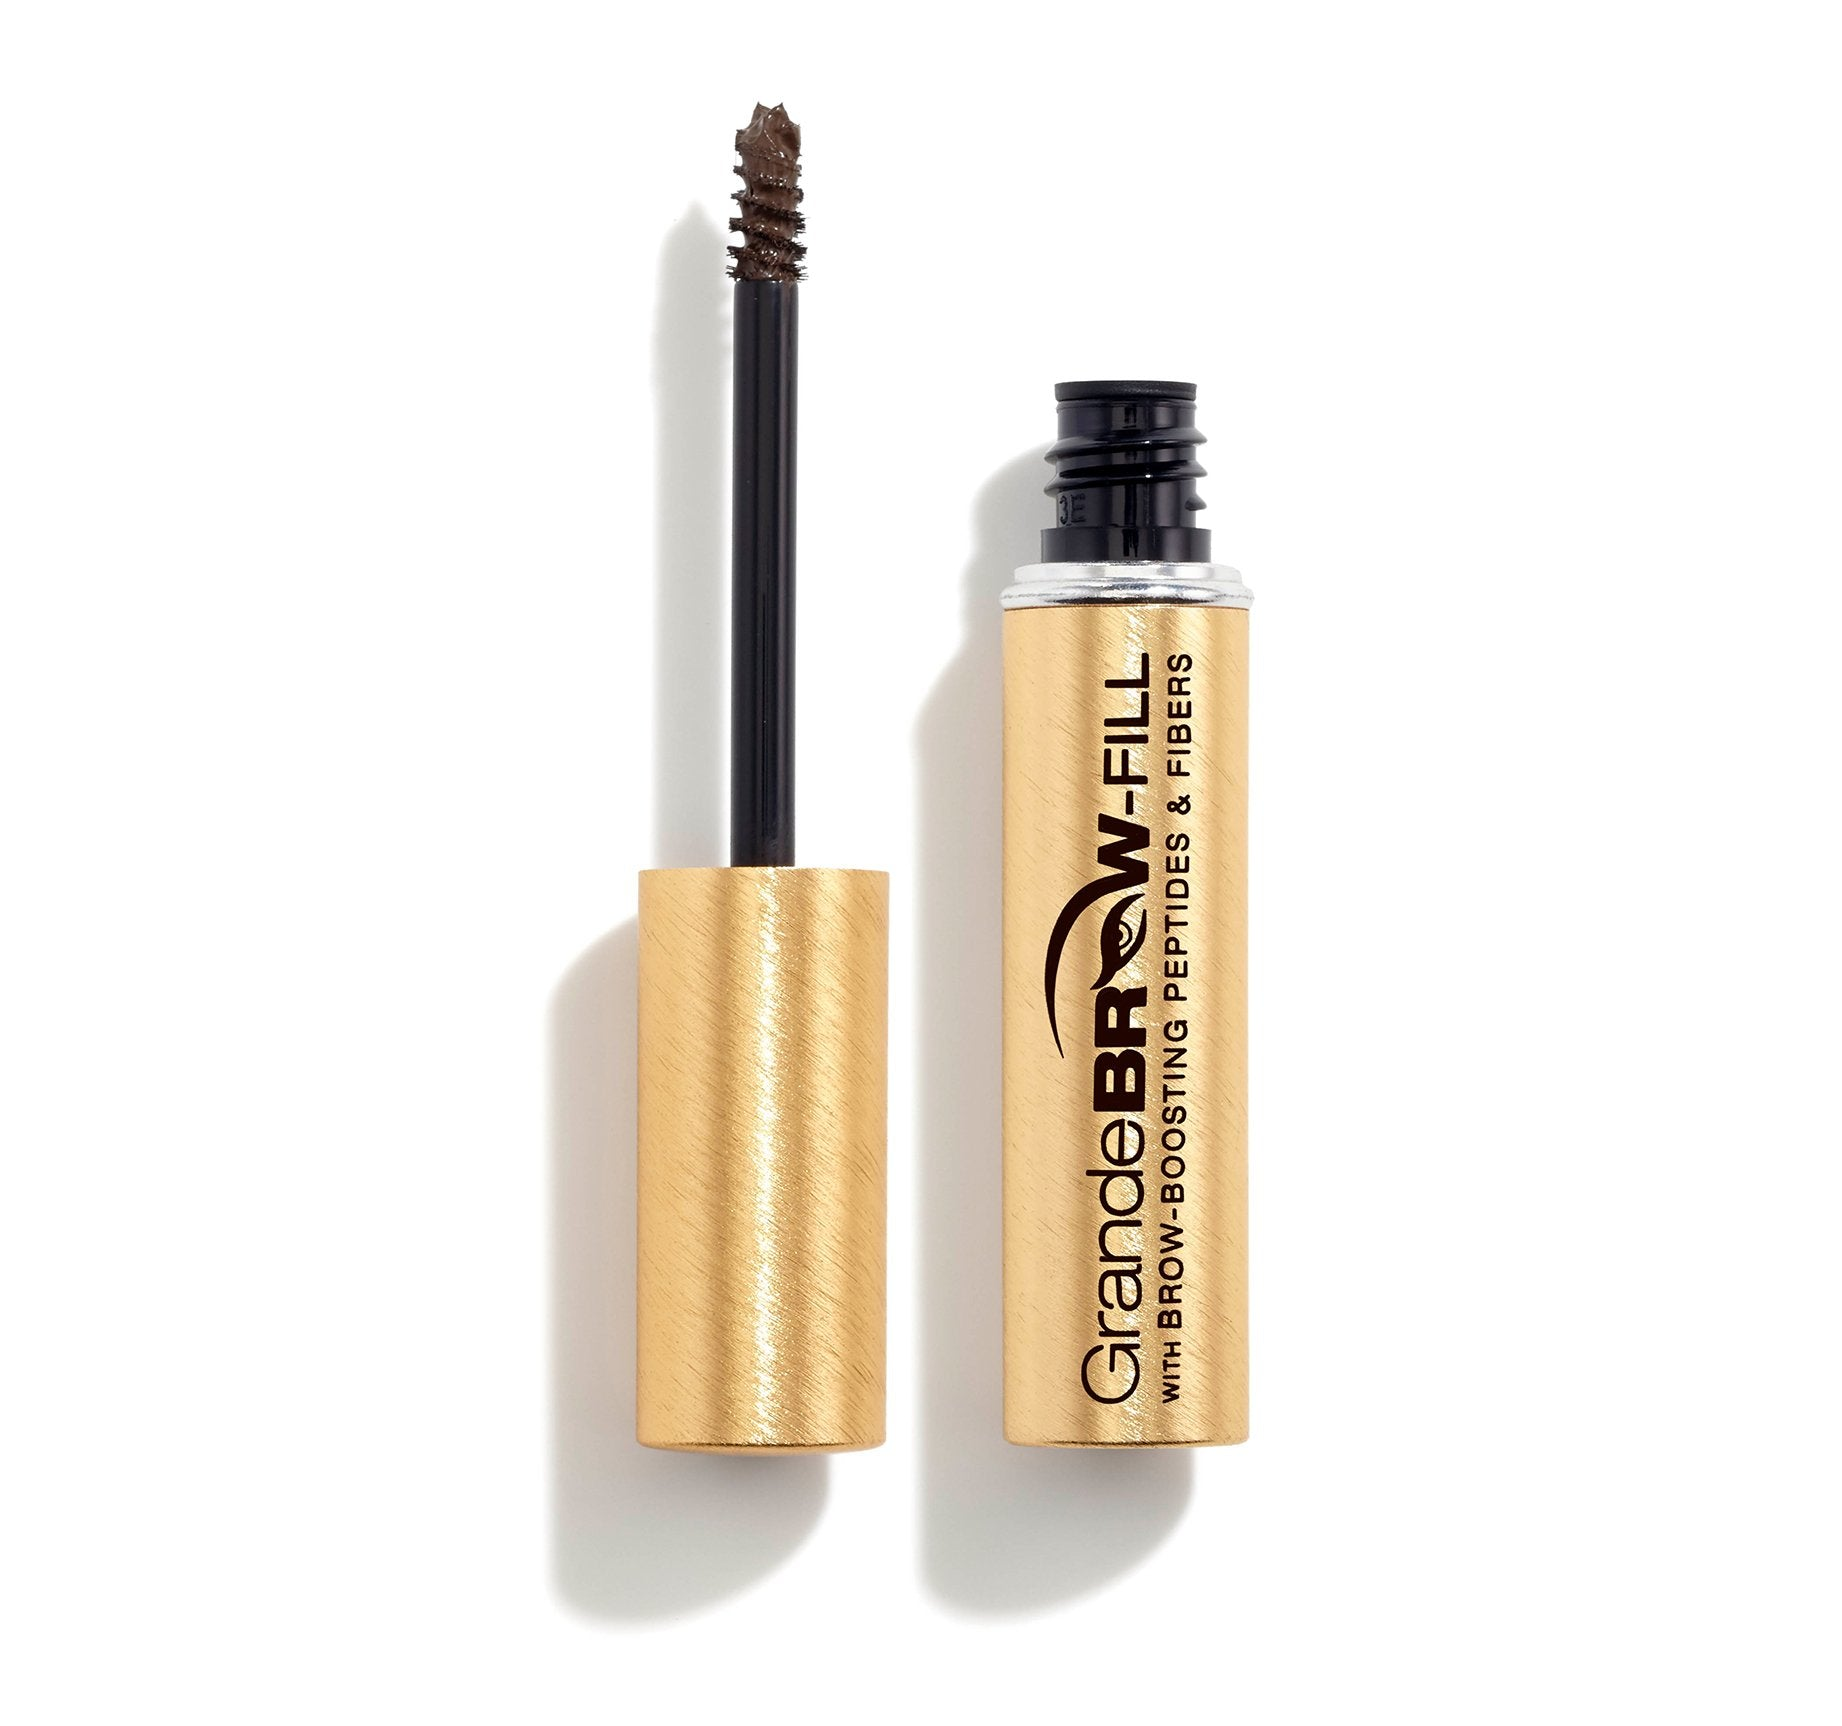 GRANDE BROW-FILL VOLUMIZING BROW GEL - DARK, view larger image